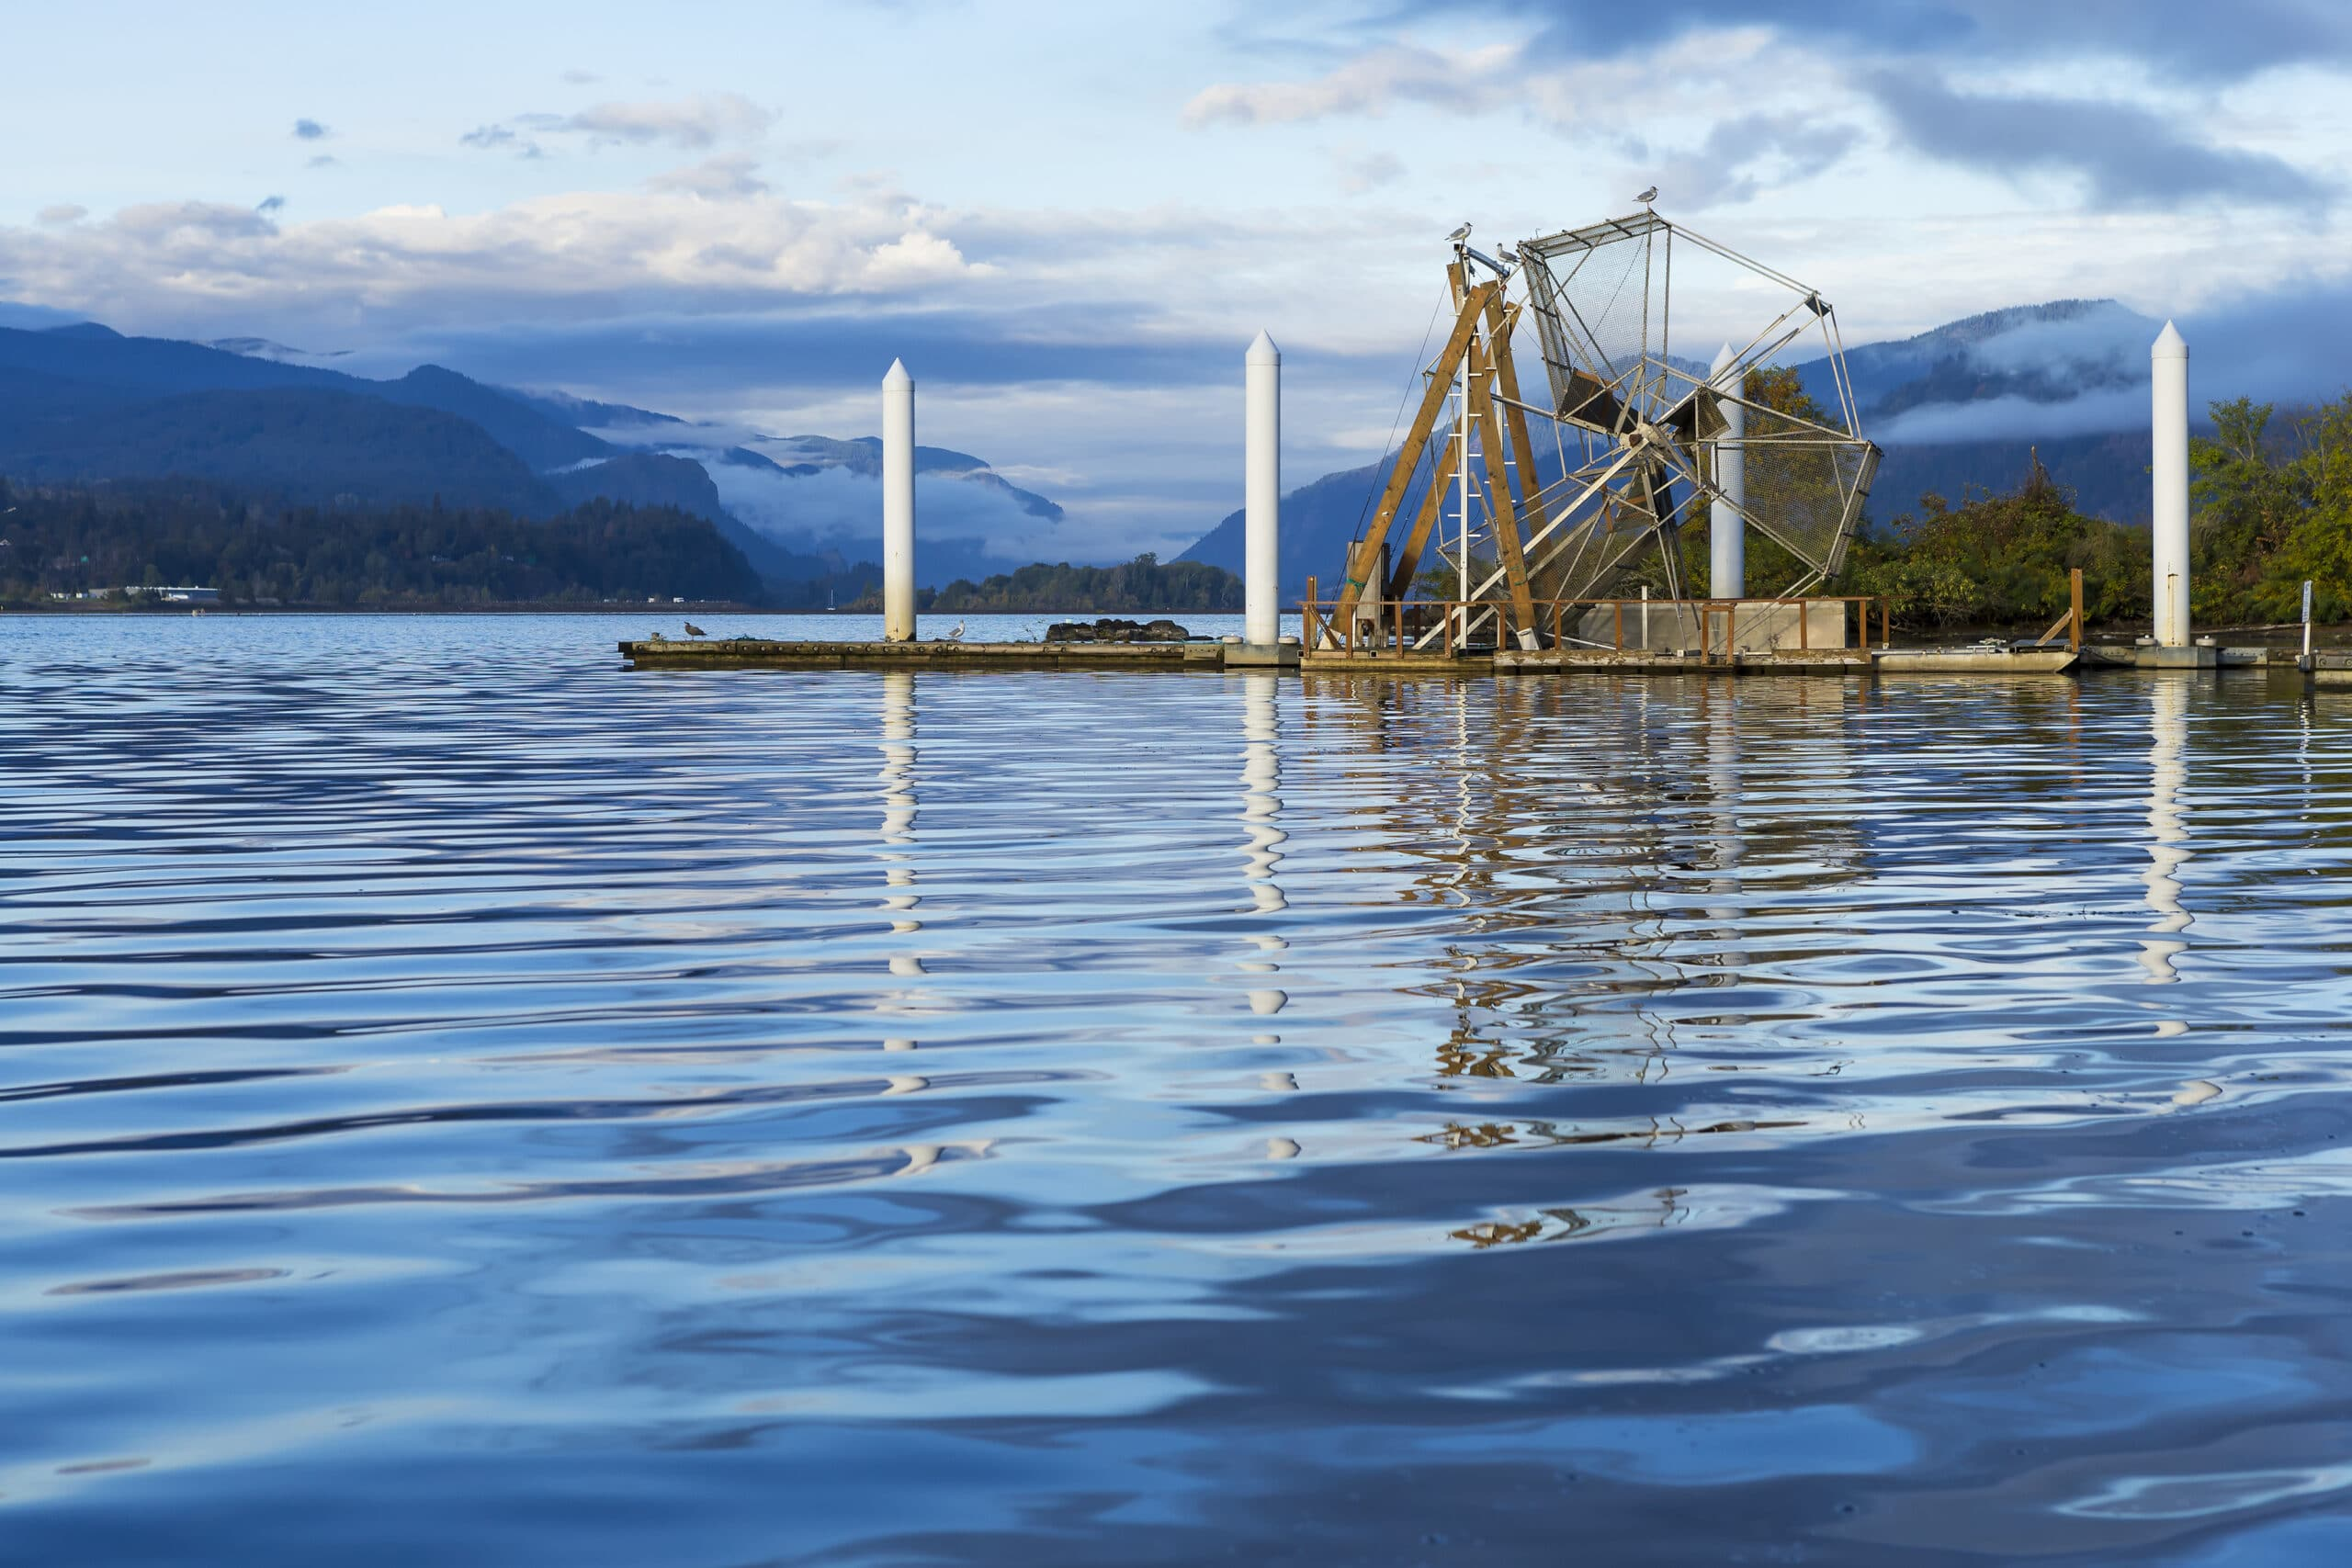 Fish Wheel on the Columbia River Gorge, Washington. A fish wheel is a device for catching fish that operates much as a water-powered mill wheel.